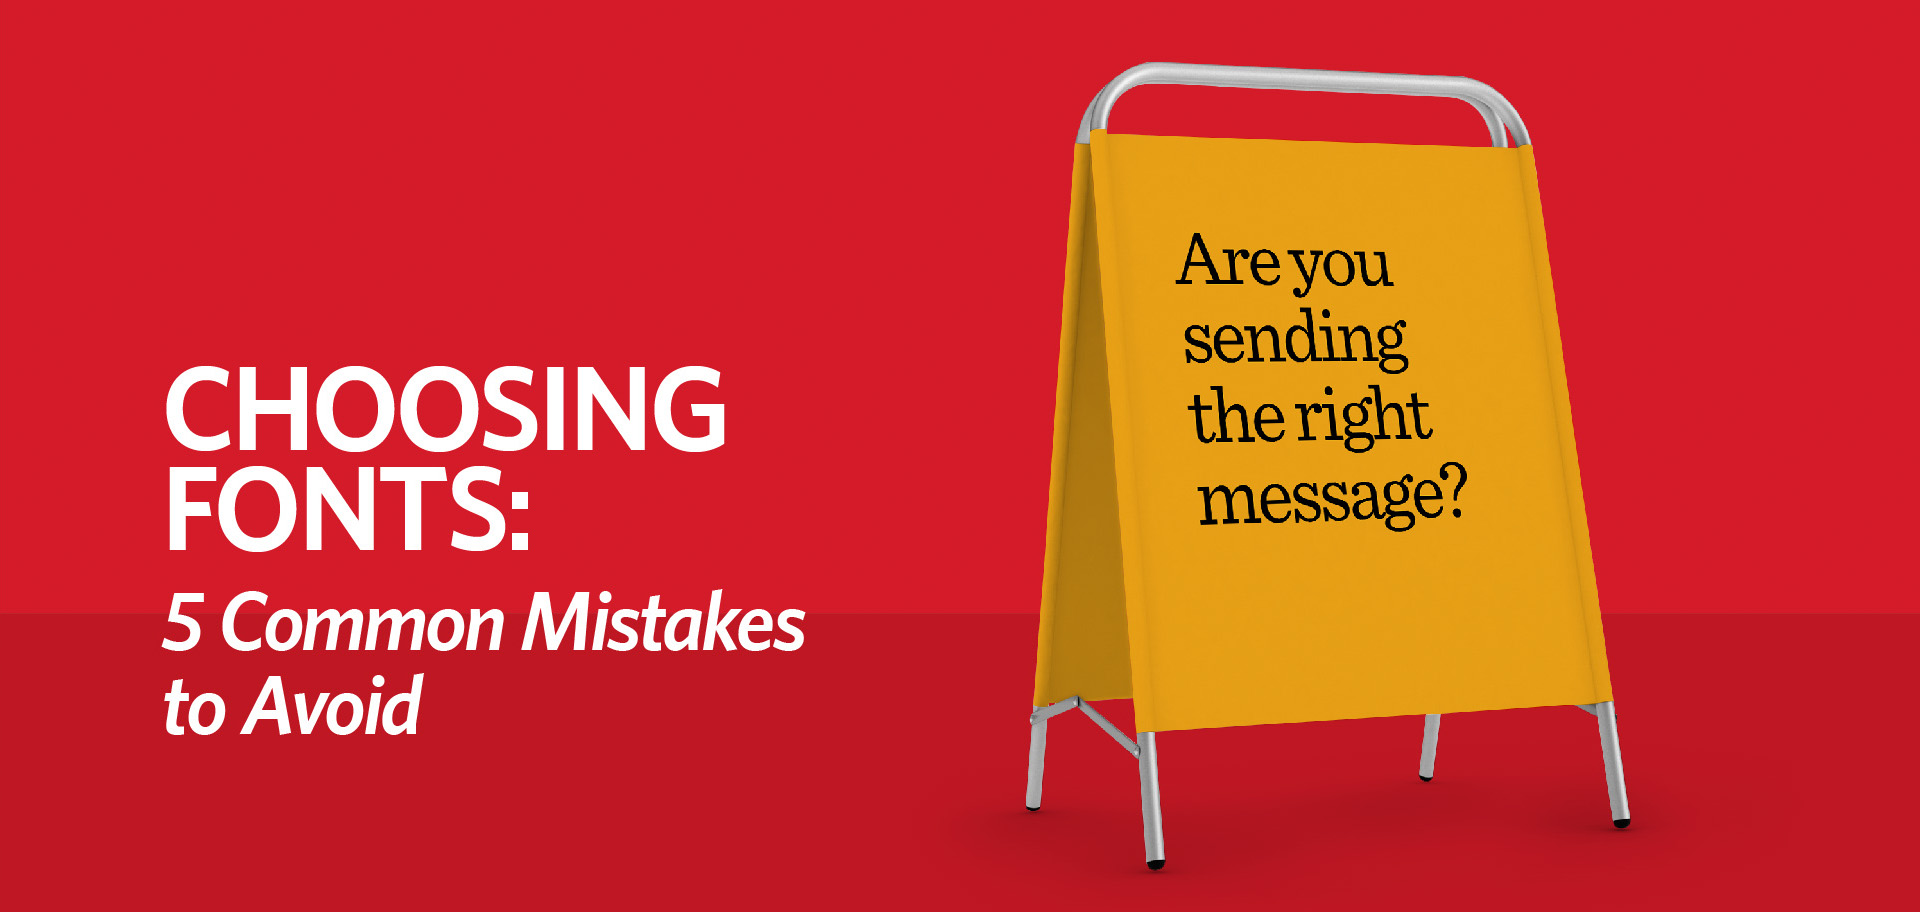 Choosing Fonts: 5 Mistakes to Avoid, Kettle Fire Creative blog fonts Choosing Fonts: 5 Common Mistakes to Avoid bad fonts fi